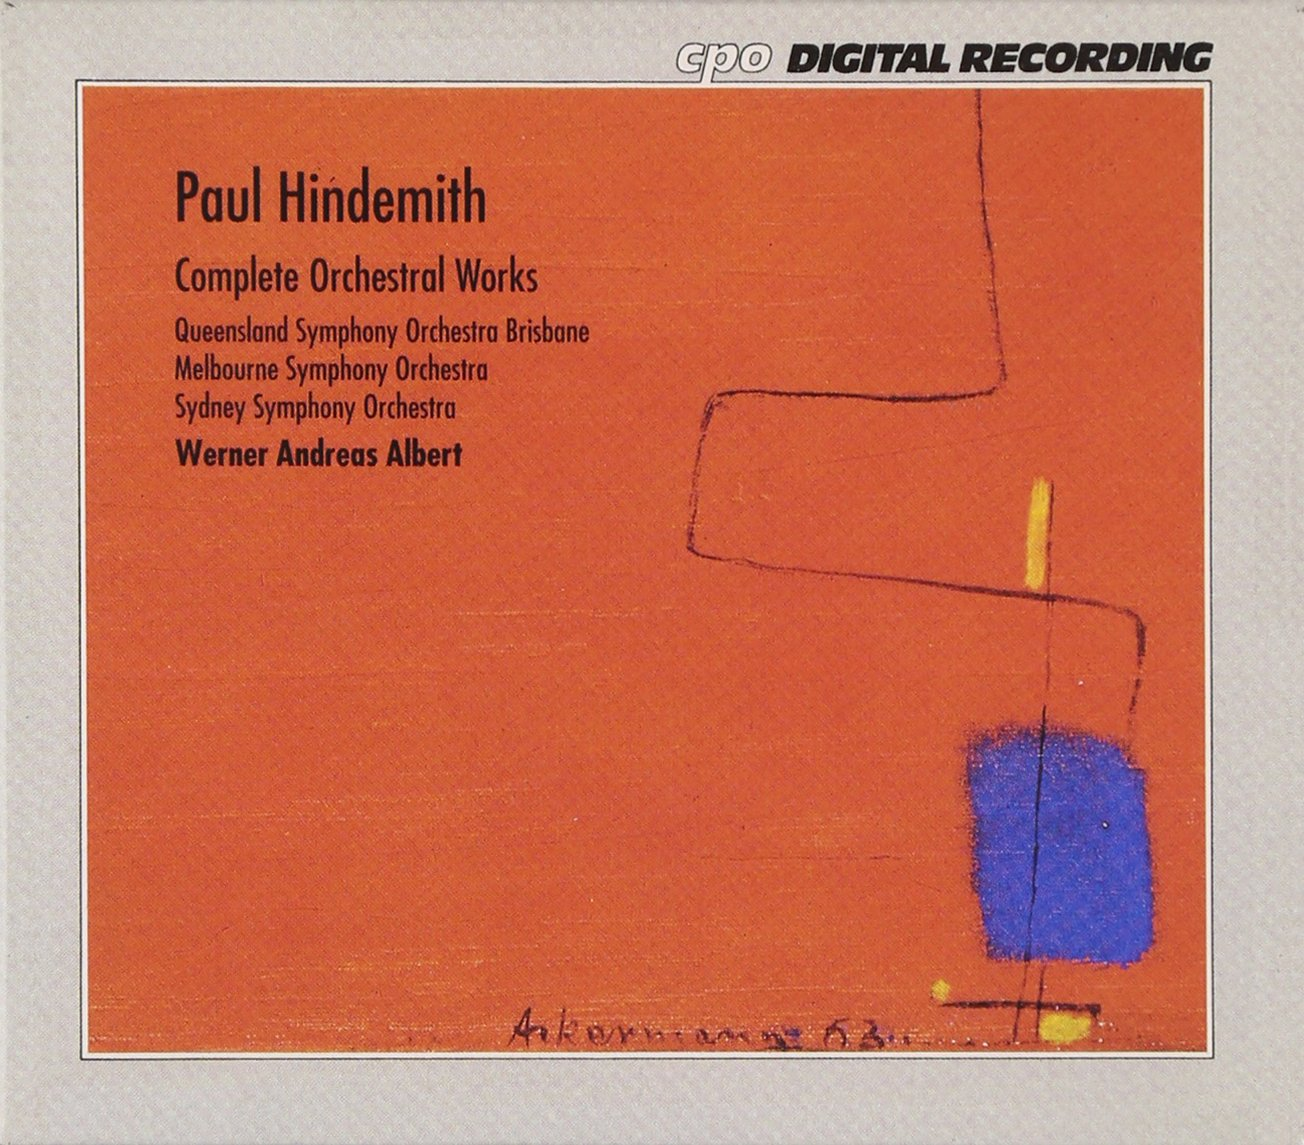 Hindemith: Complete Orchestral Works by CPO